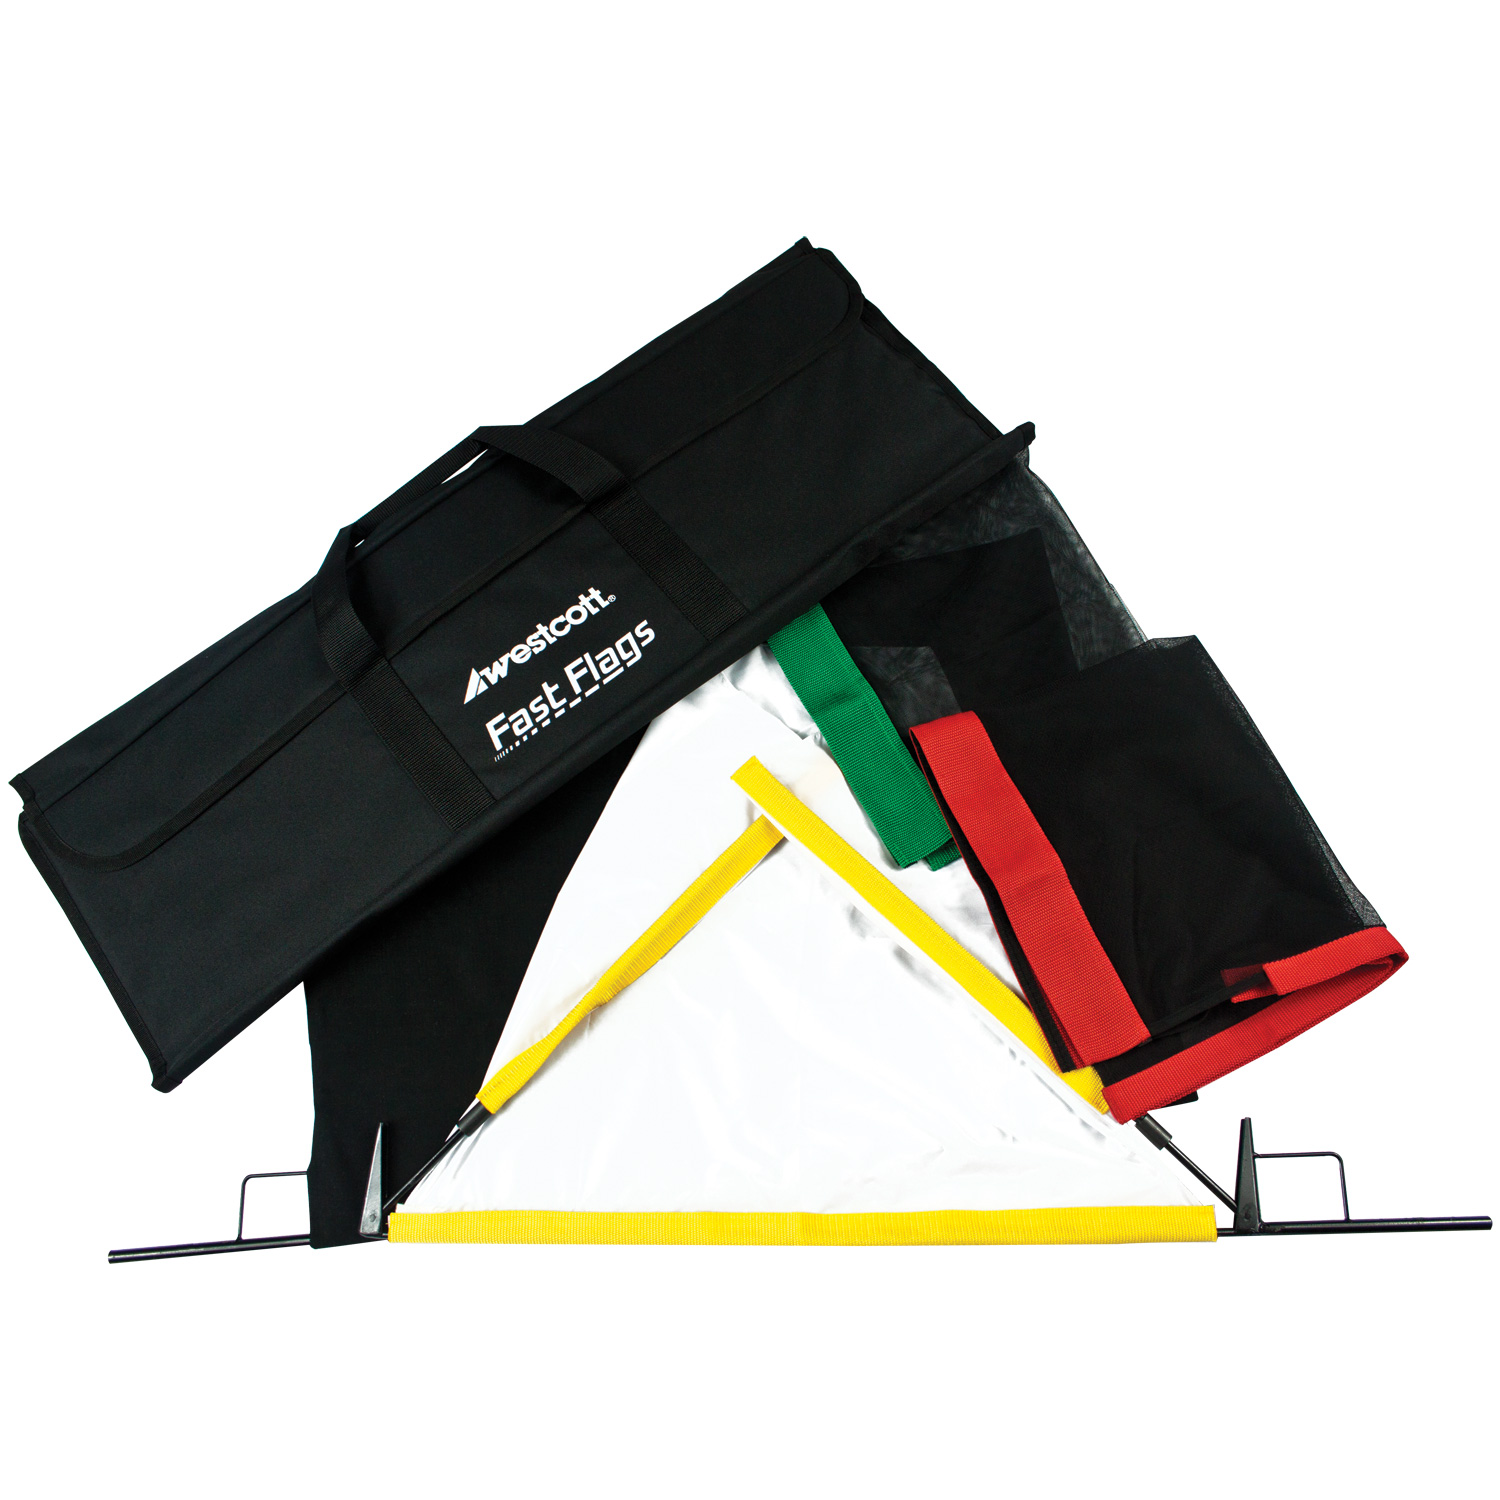 Fast Flags 24-in. x 36-in. Kit